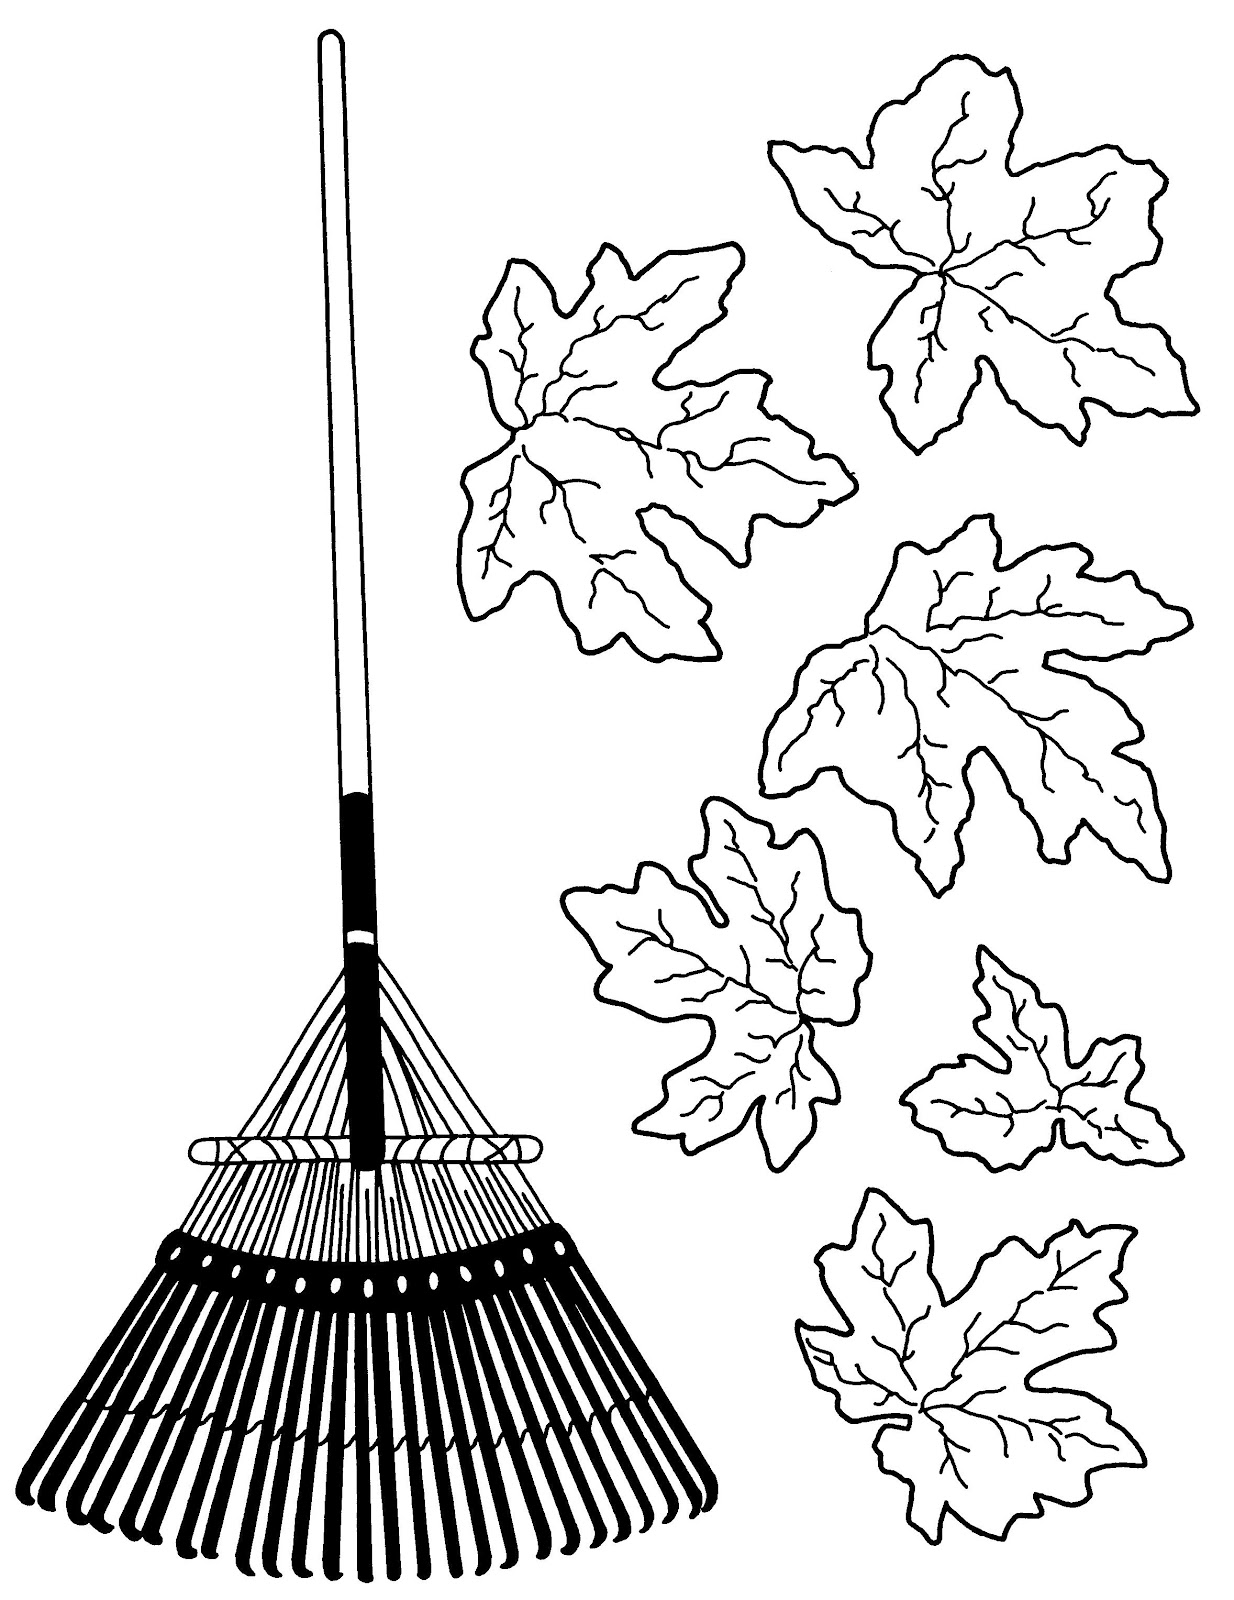 rakes coloring pages - photo#9